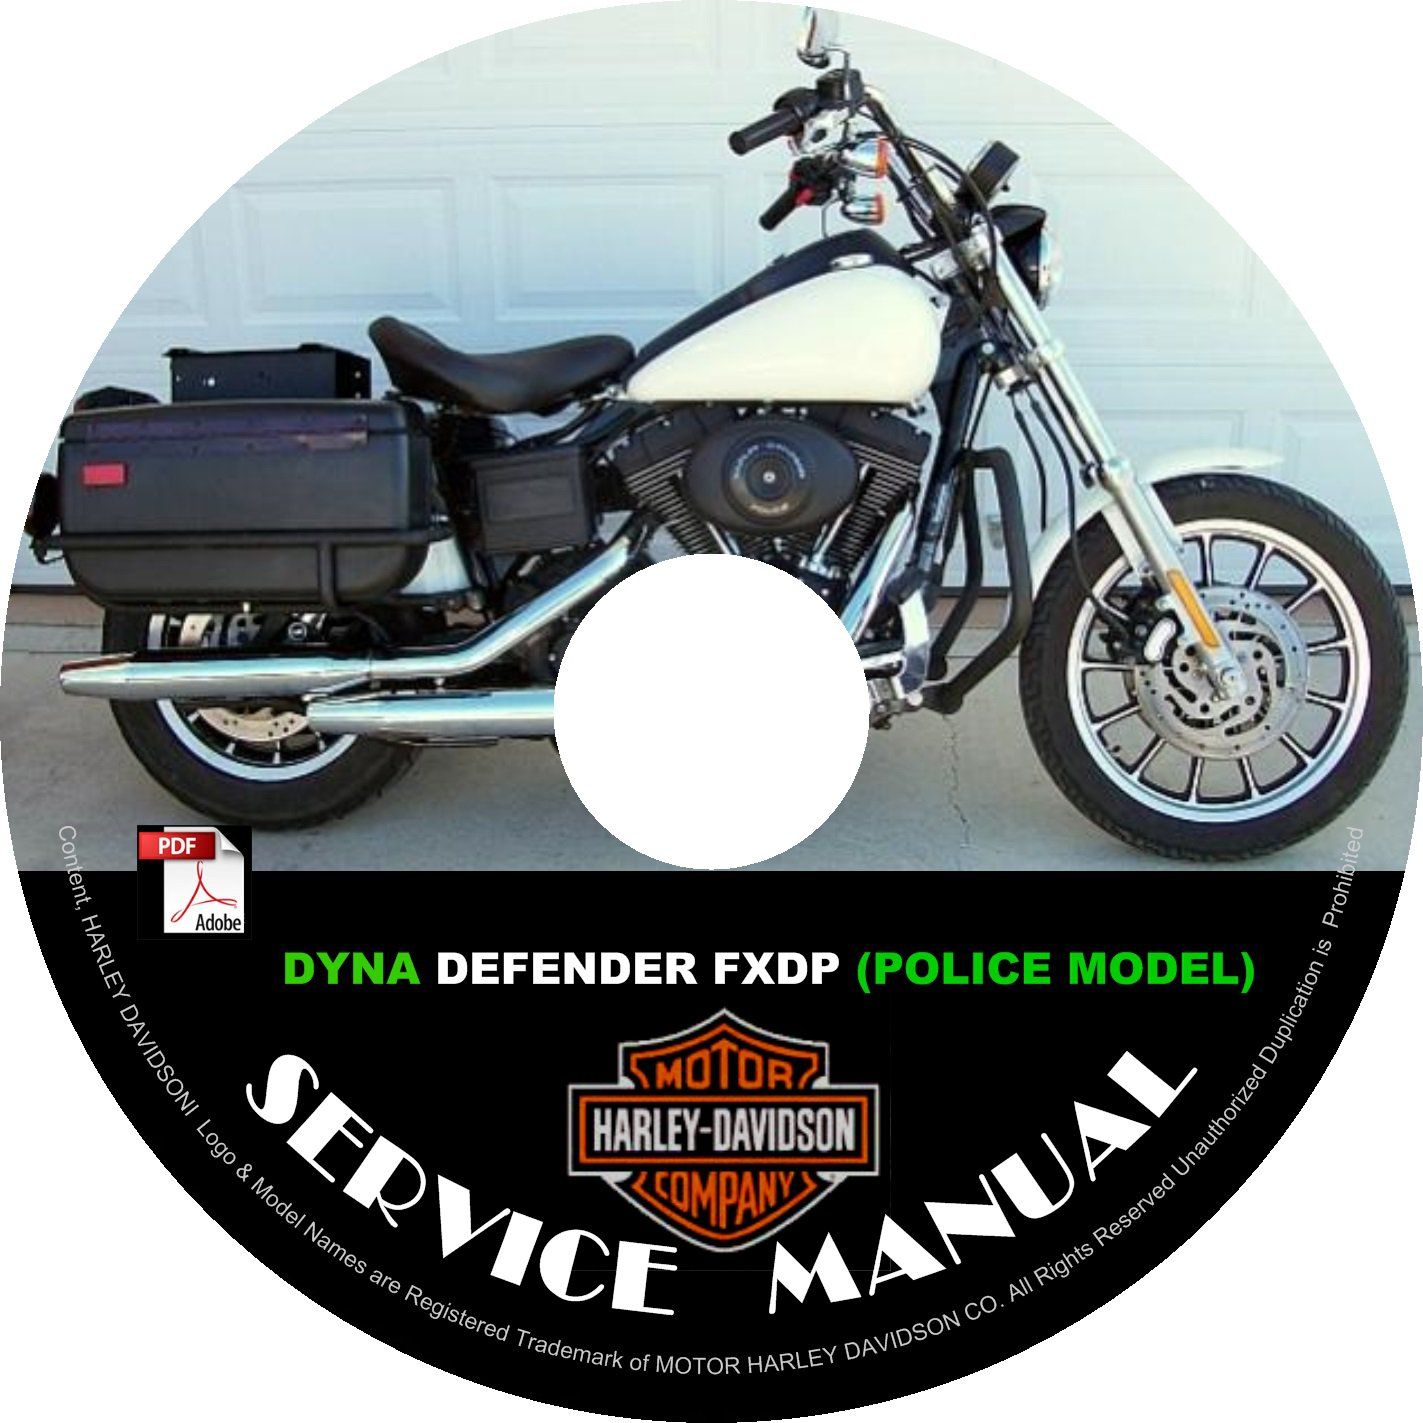 2005 Harley Davidson DYNA DEFENDER FXDP POLICE Service Repair Shop Manual on CD Fix Rebuild Workshop